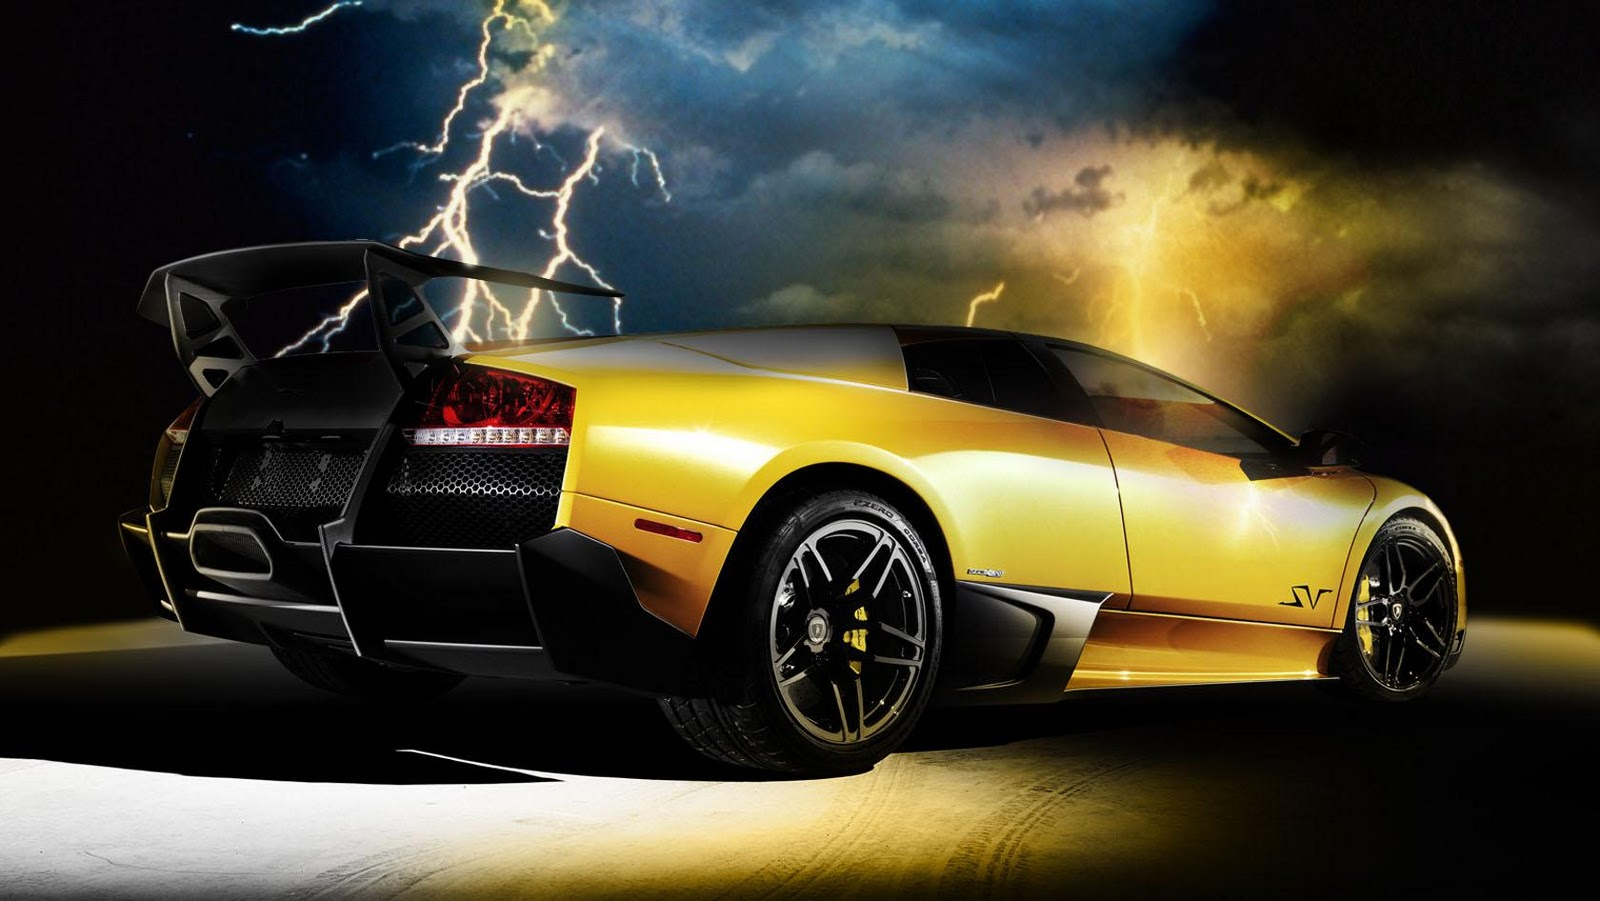 lamborghini murcielago wallpaper Cool Car Wallpapers 1600x901